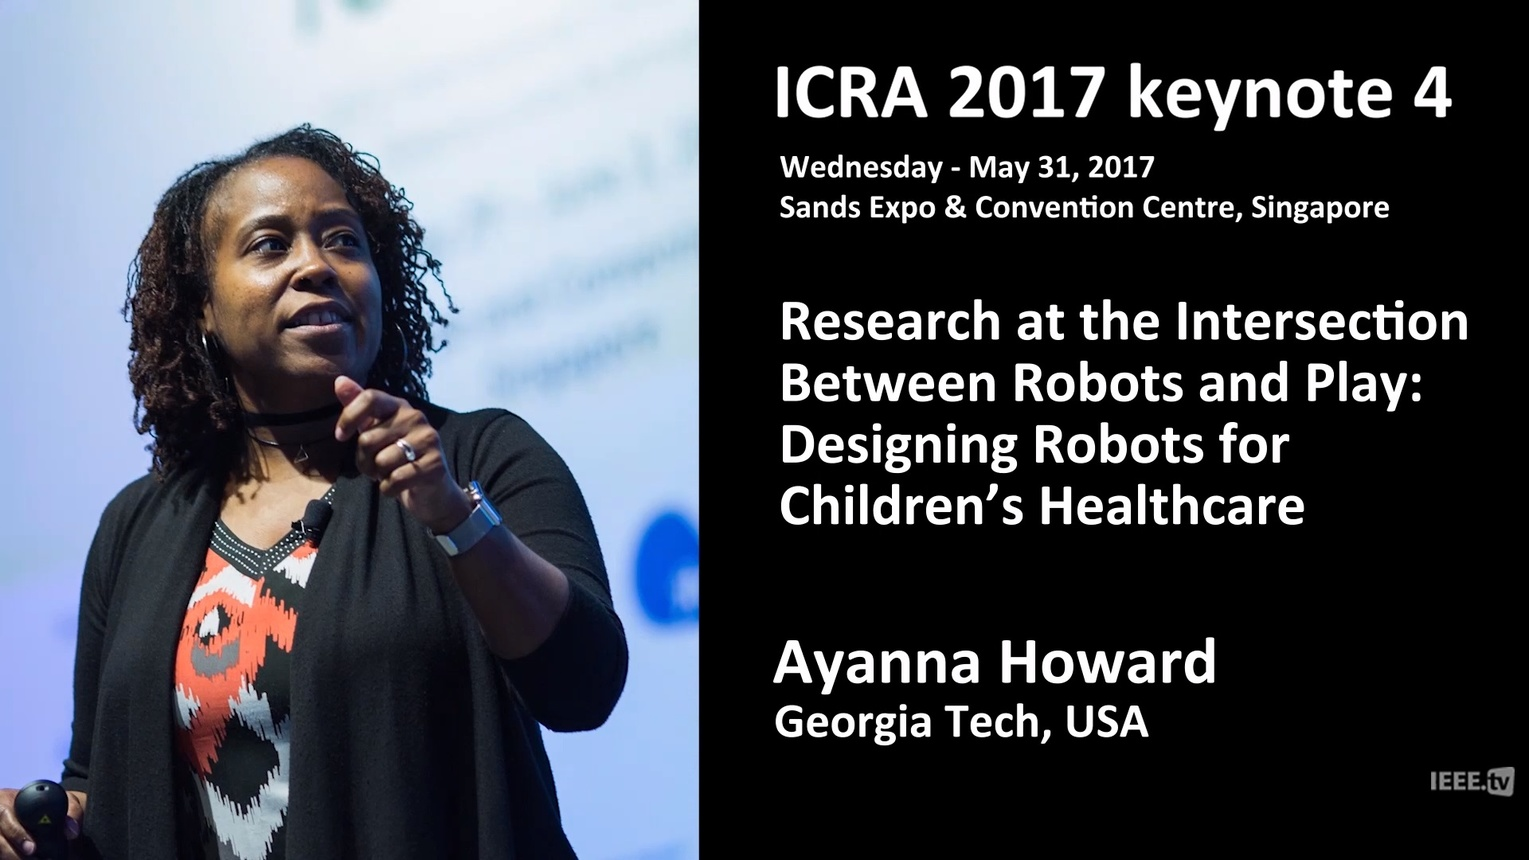 Research at the Intersection Between Robots and Play: Designing Robots for Children's Healthcare